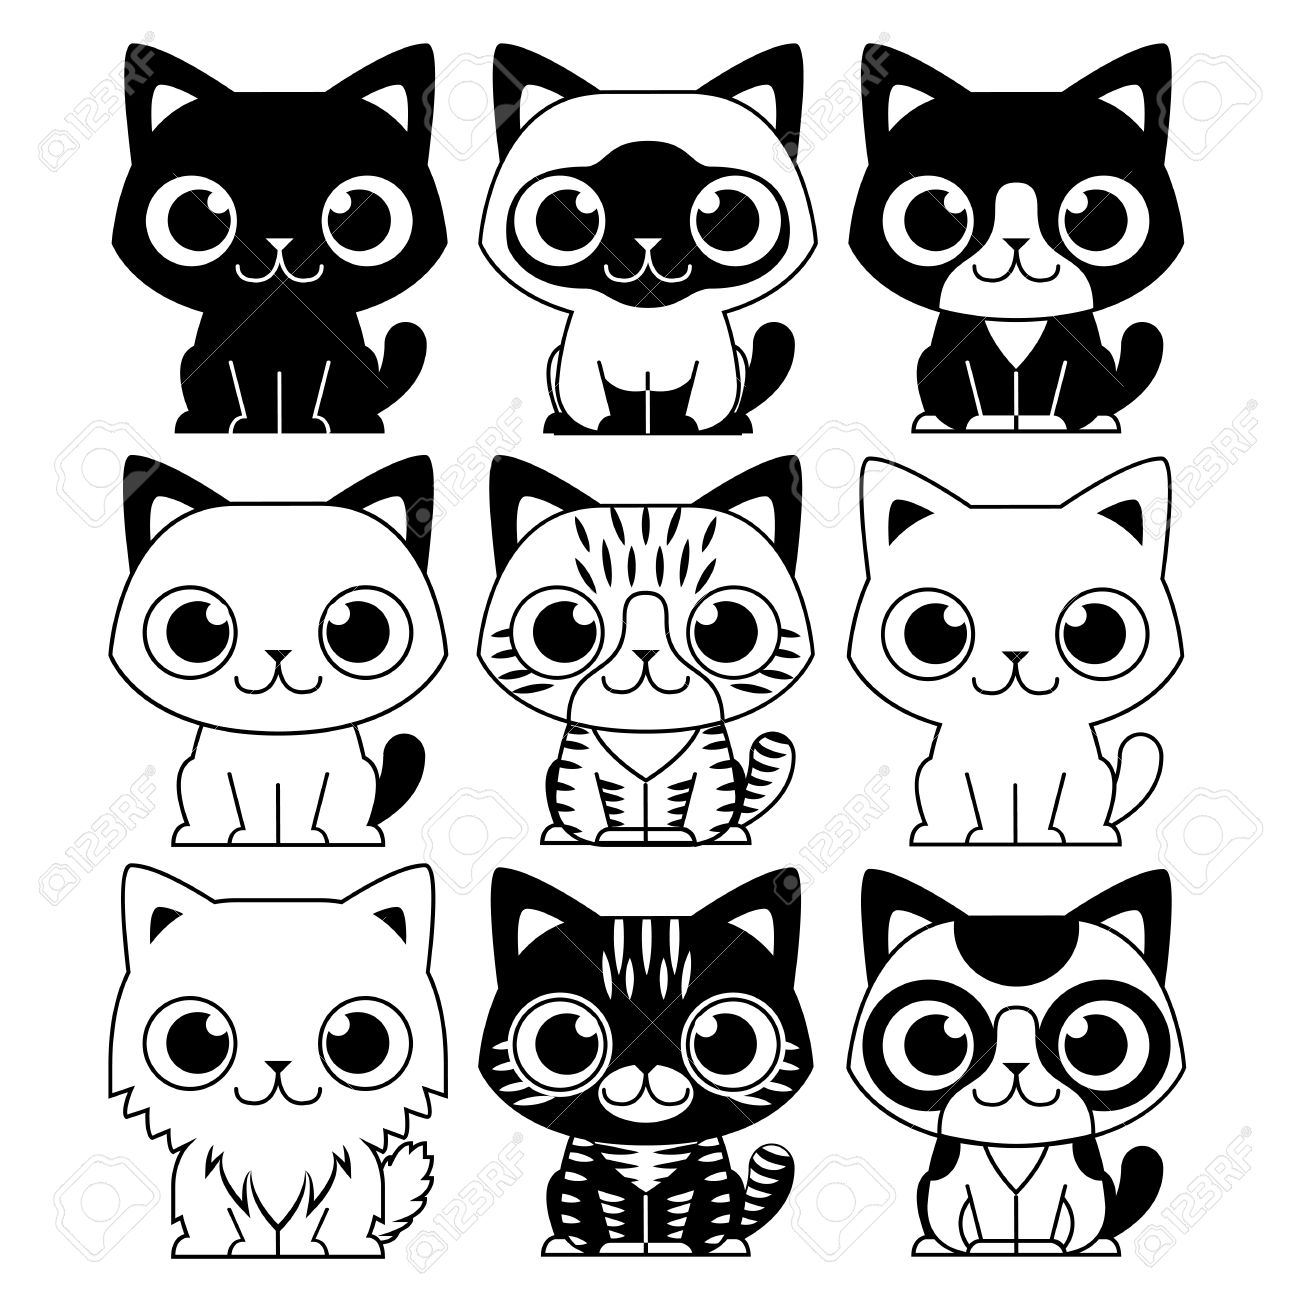 Vector Set Of Different Adorable Cartoon Cats Isolated Royalty ...